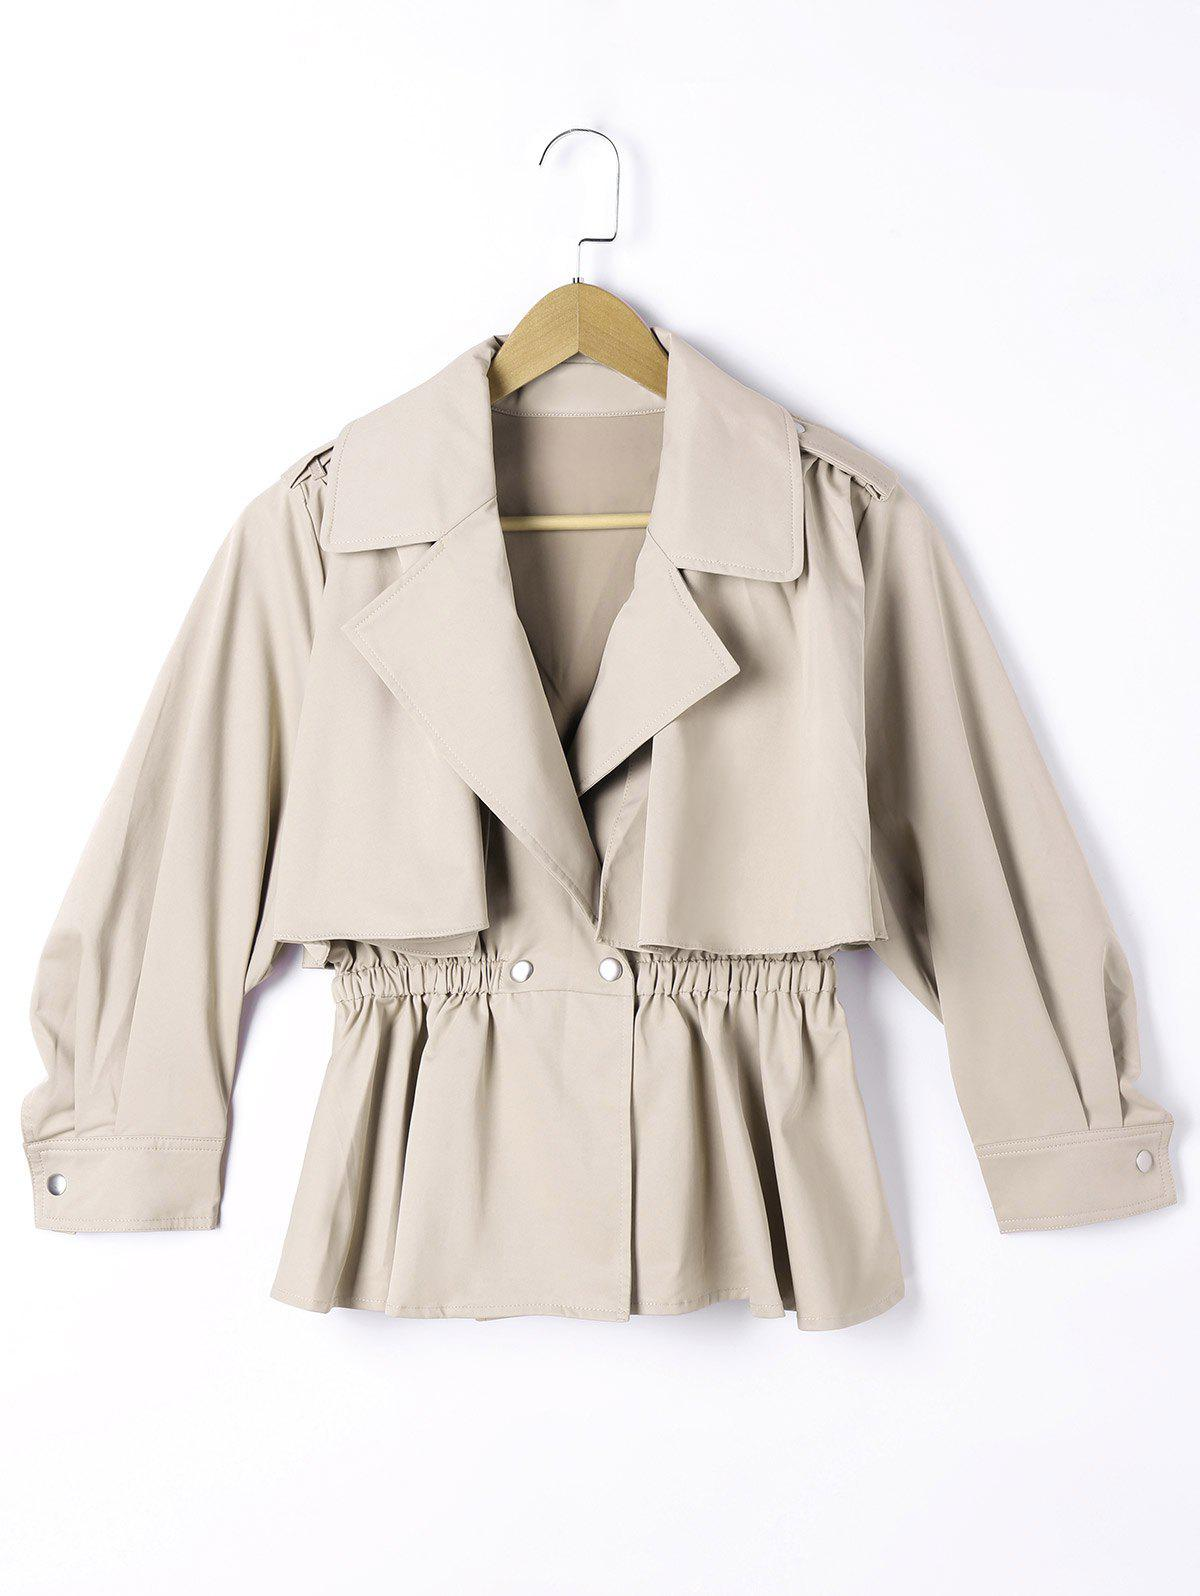 Epaulet Elastic Waist Long Sleeve Overlay Jacket - LIGHT KHAKI M